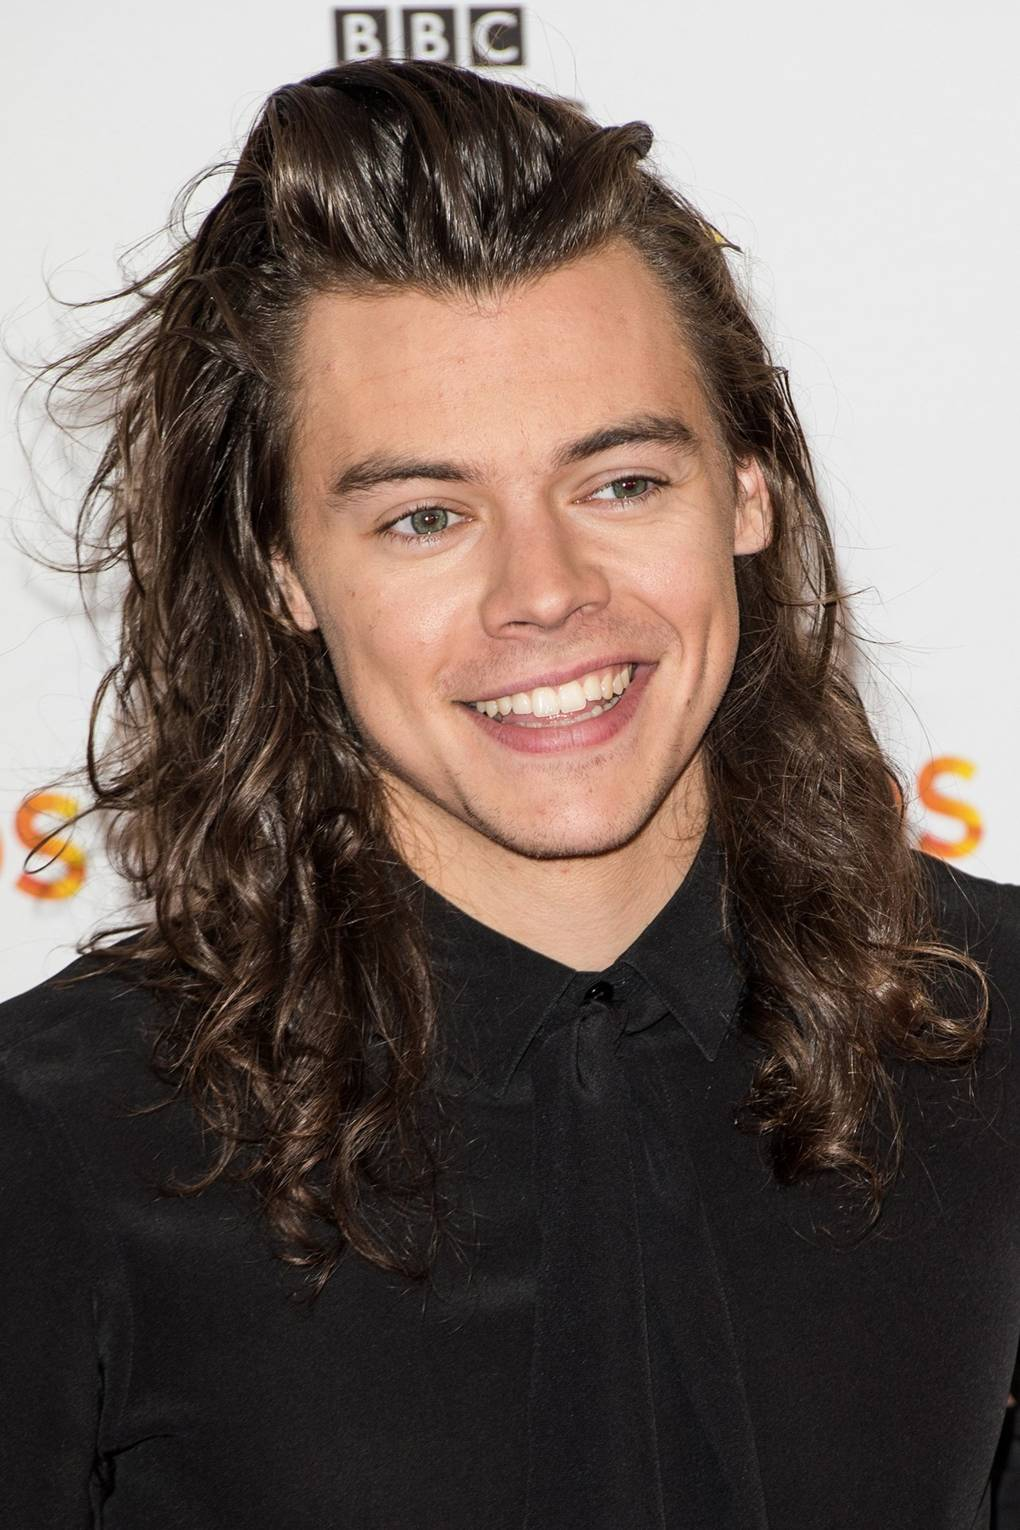 Harry Styles Hollywood Acting Début Christopher Nolan Film Haircut ...